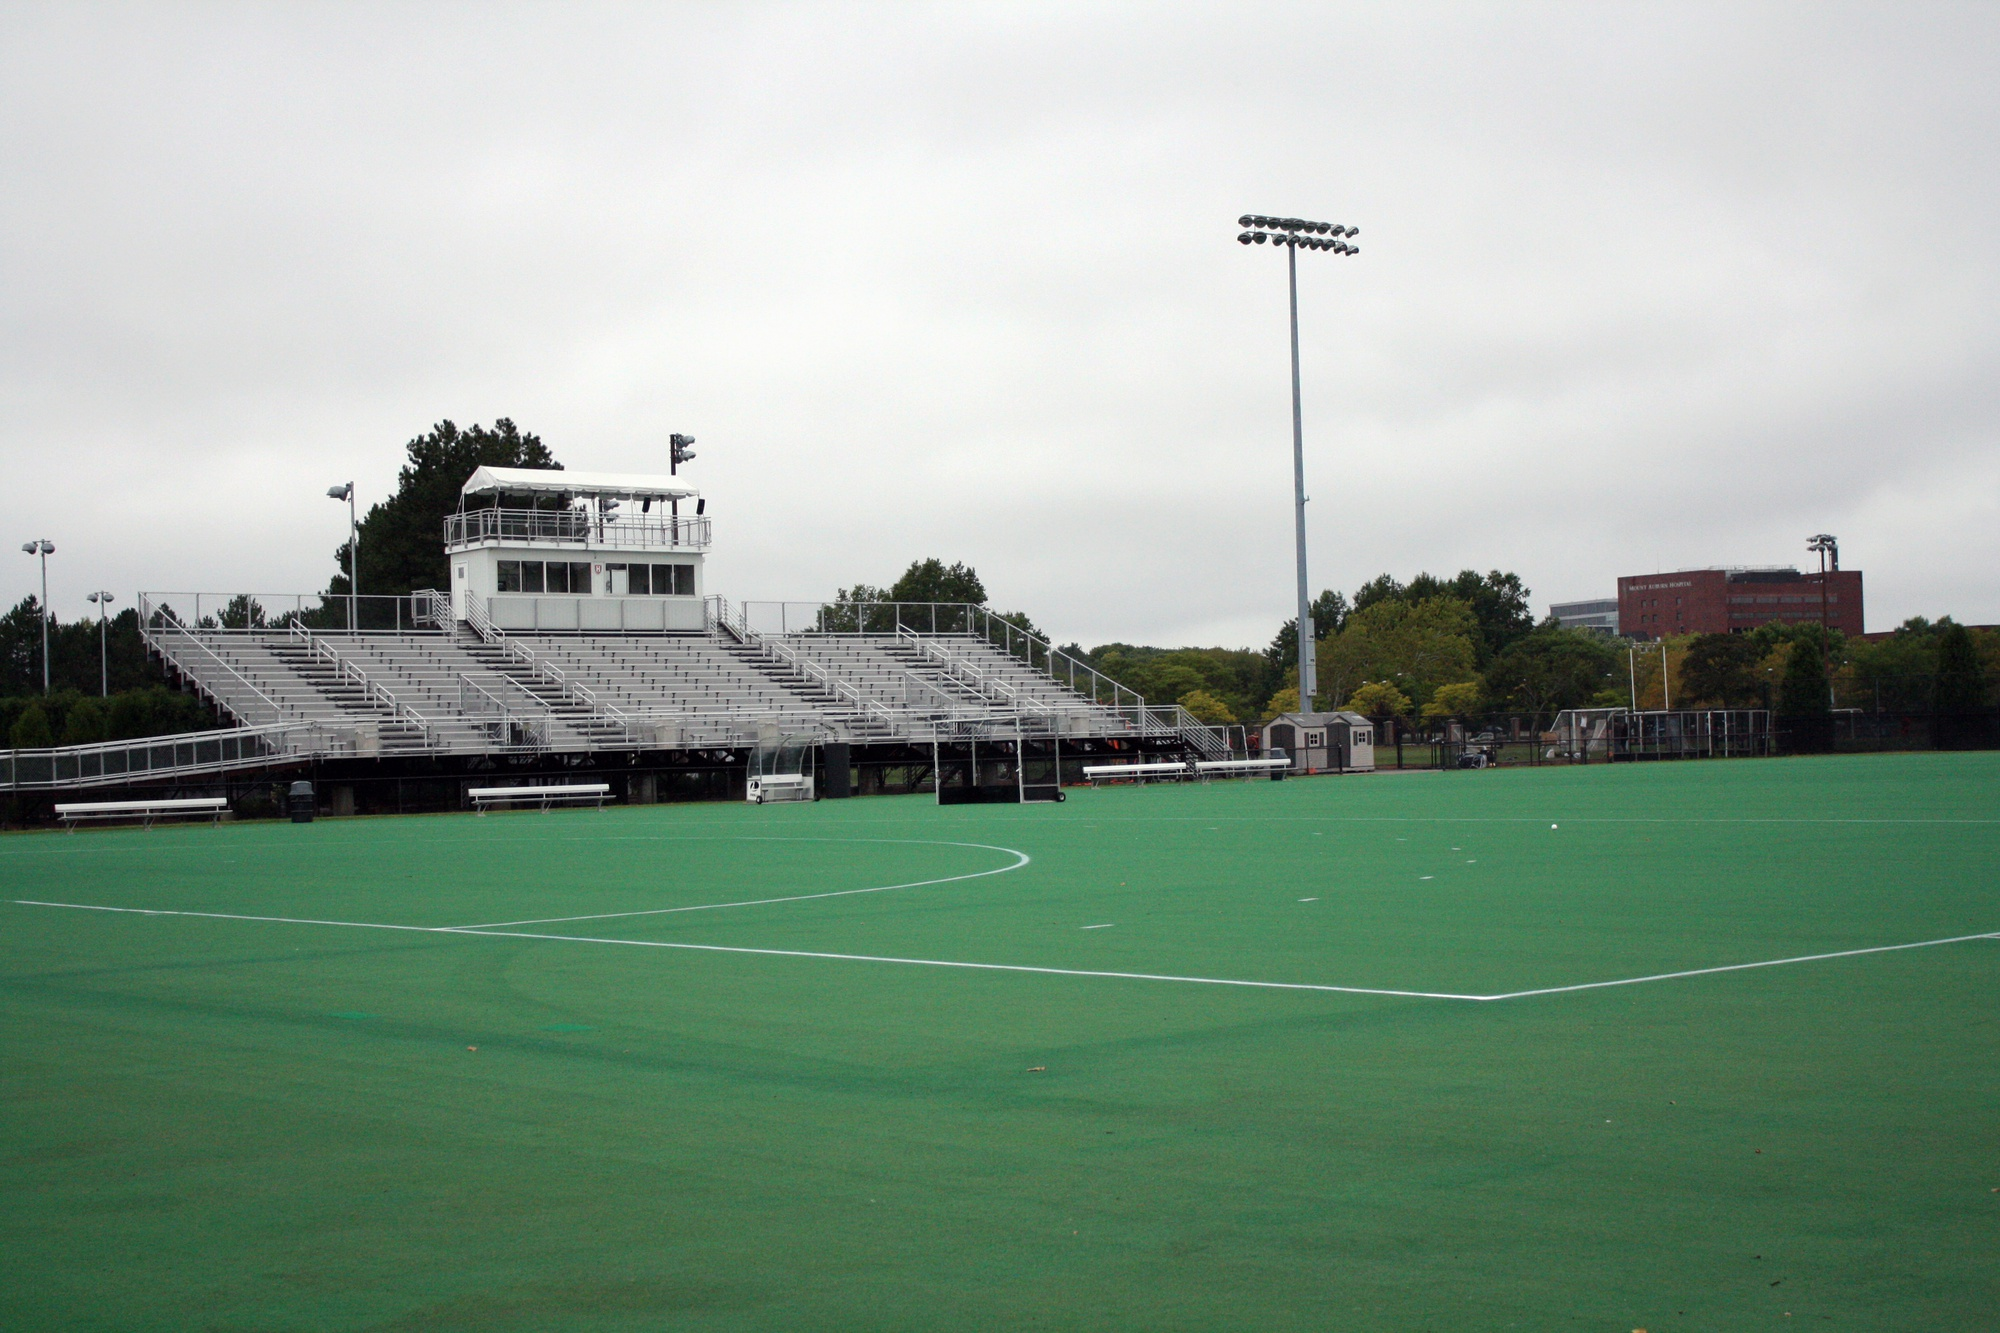 The above Harvard Field Hockey Stadium, built in 2000, had previously been named in honor of a gift by Gerald R. Jordan '61. The field hockey field's namesake transitioned after Soldiers Field, a soccer and lacrosse field, was renamed to Jordan Field.